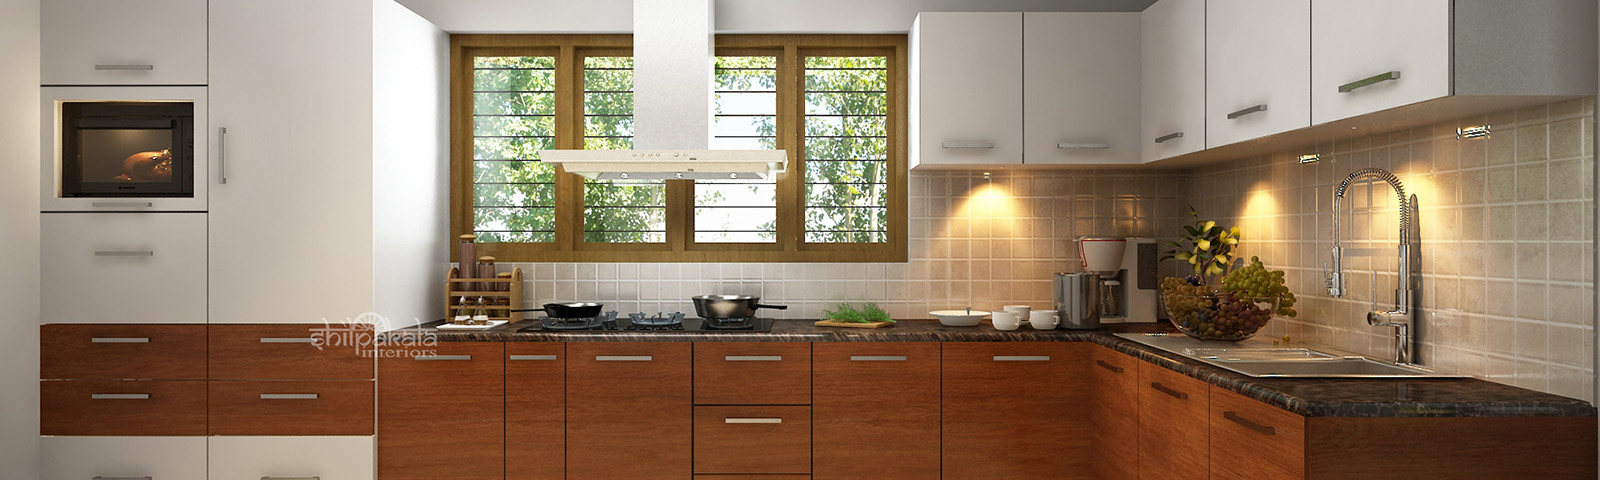 Modular Kitchen Cabinets   Kerala Kitchen Design. Home/ Service List / Kitchen  Interior Design